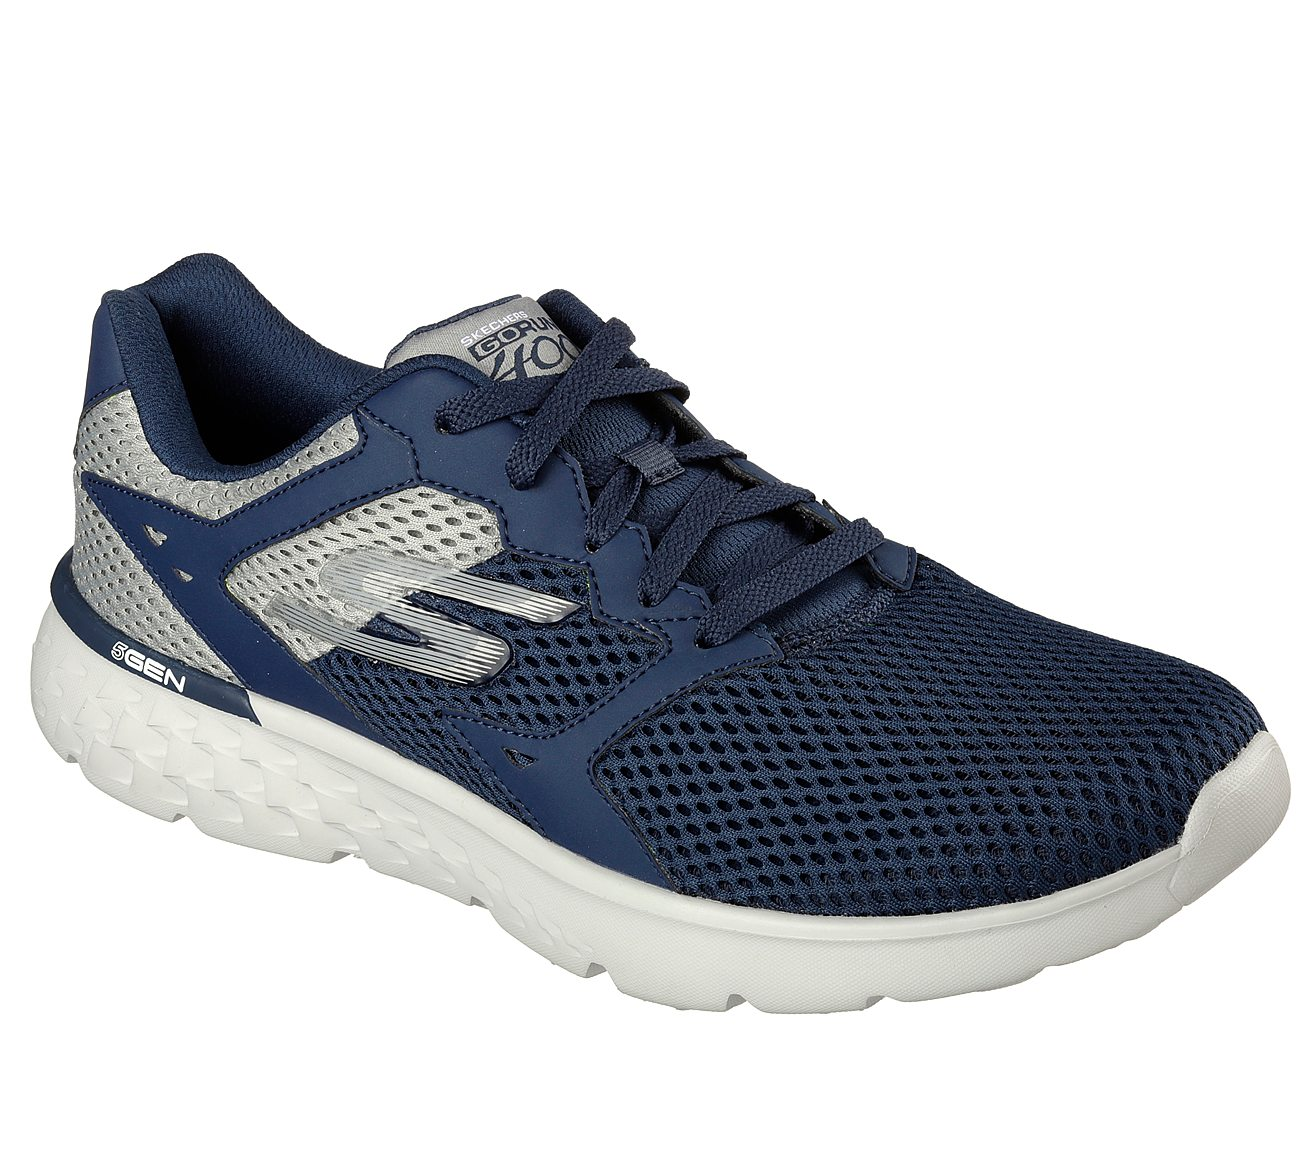 Sketchers go run 400 running shoes review